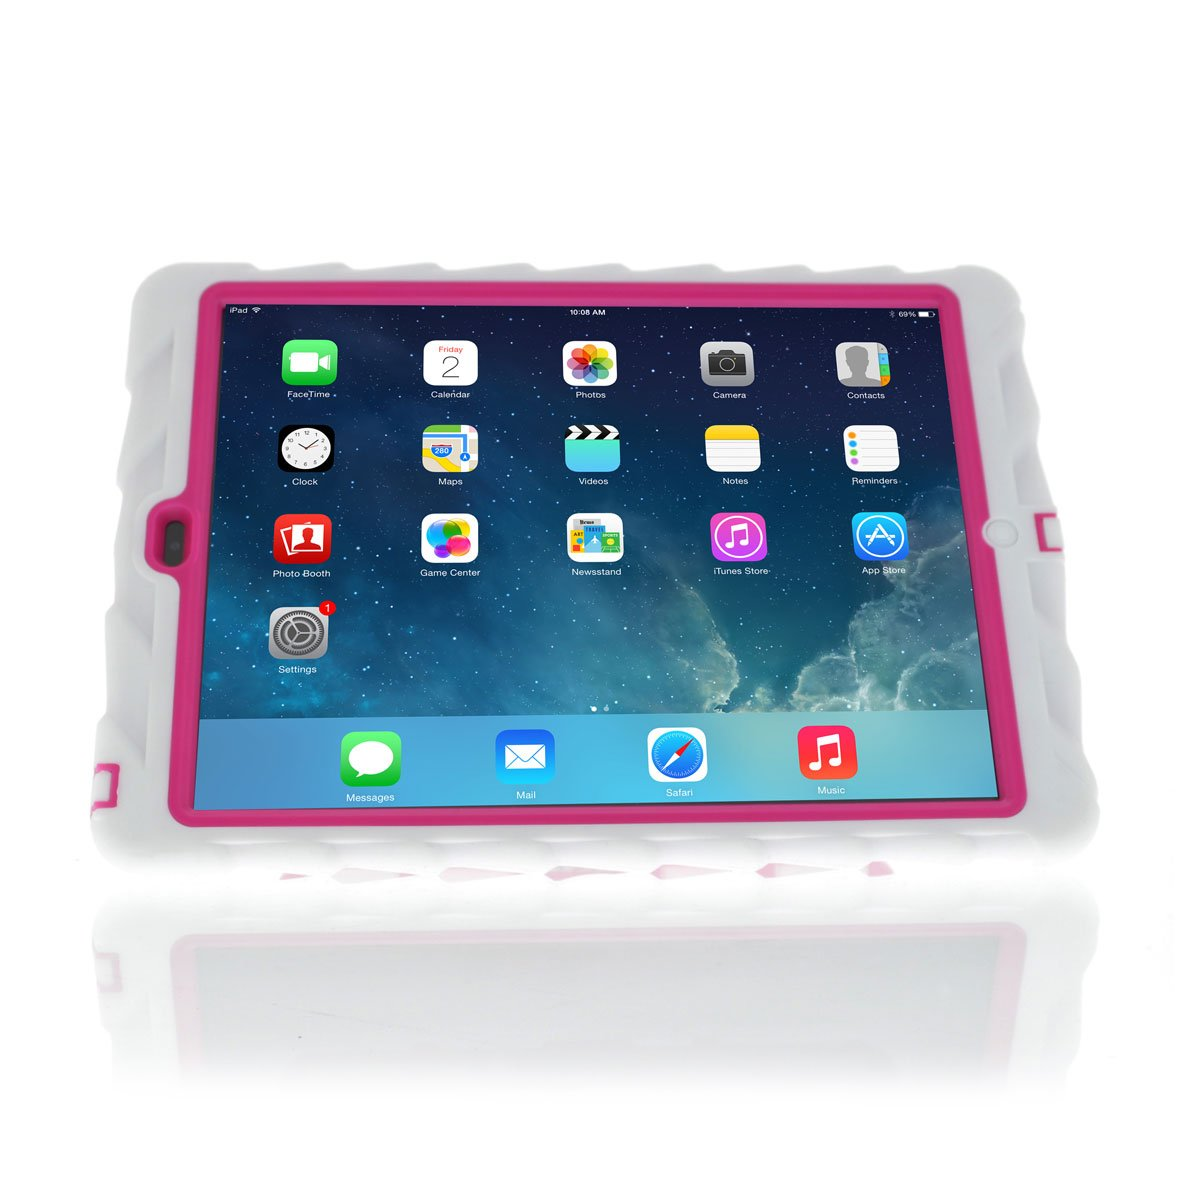 Apple Ipad Air Gumdrop Stand White Nan Ph Pro 3 800g Cases Silicone Rugged Shock Absorbing Protective Dual Layer Cover Case Computers